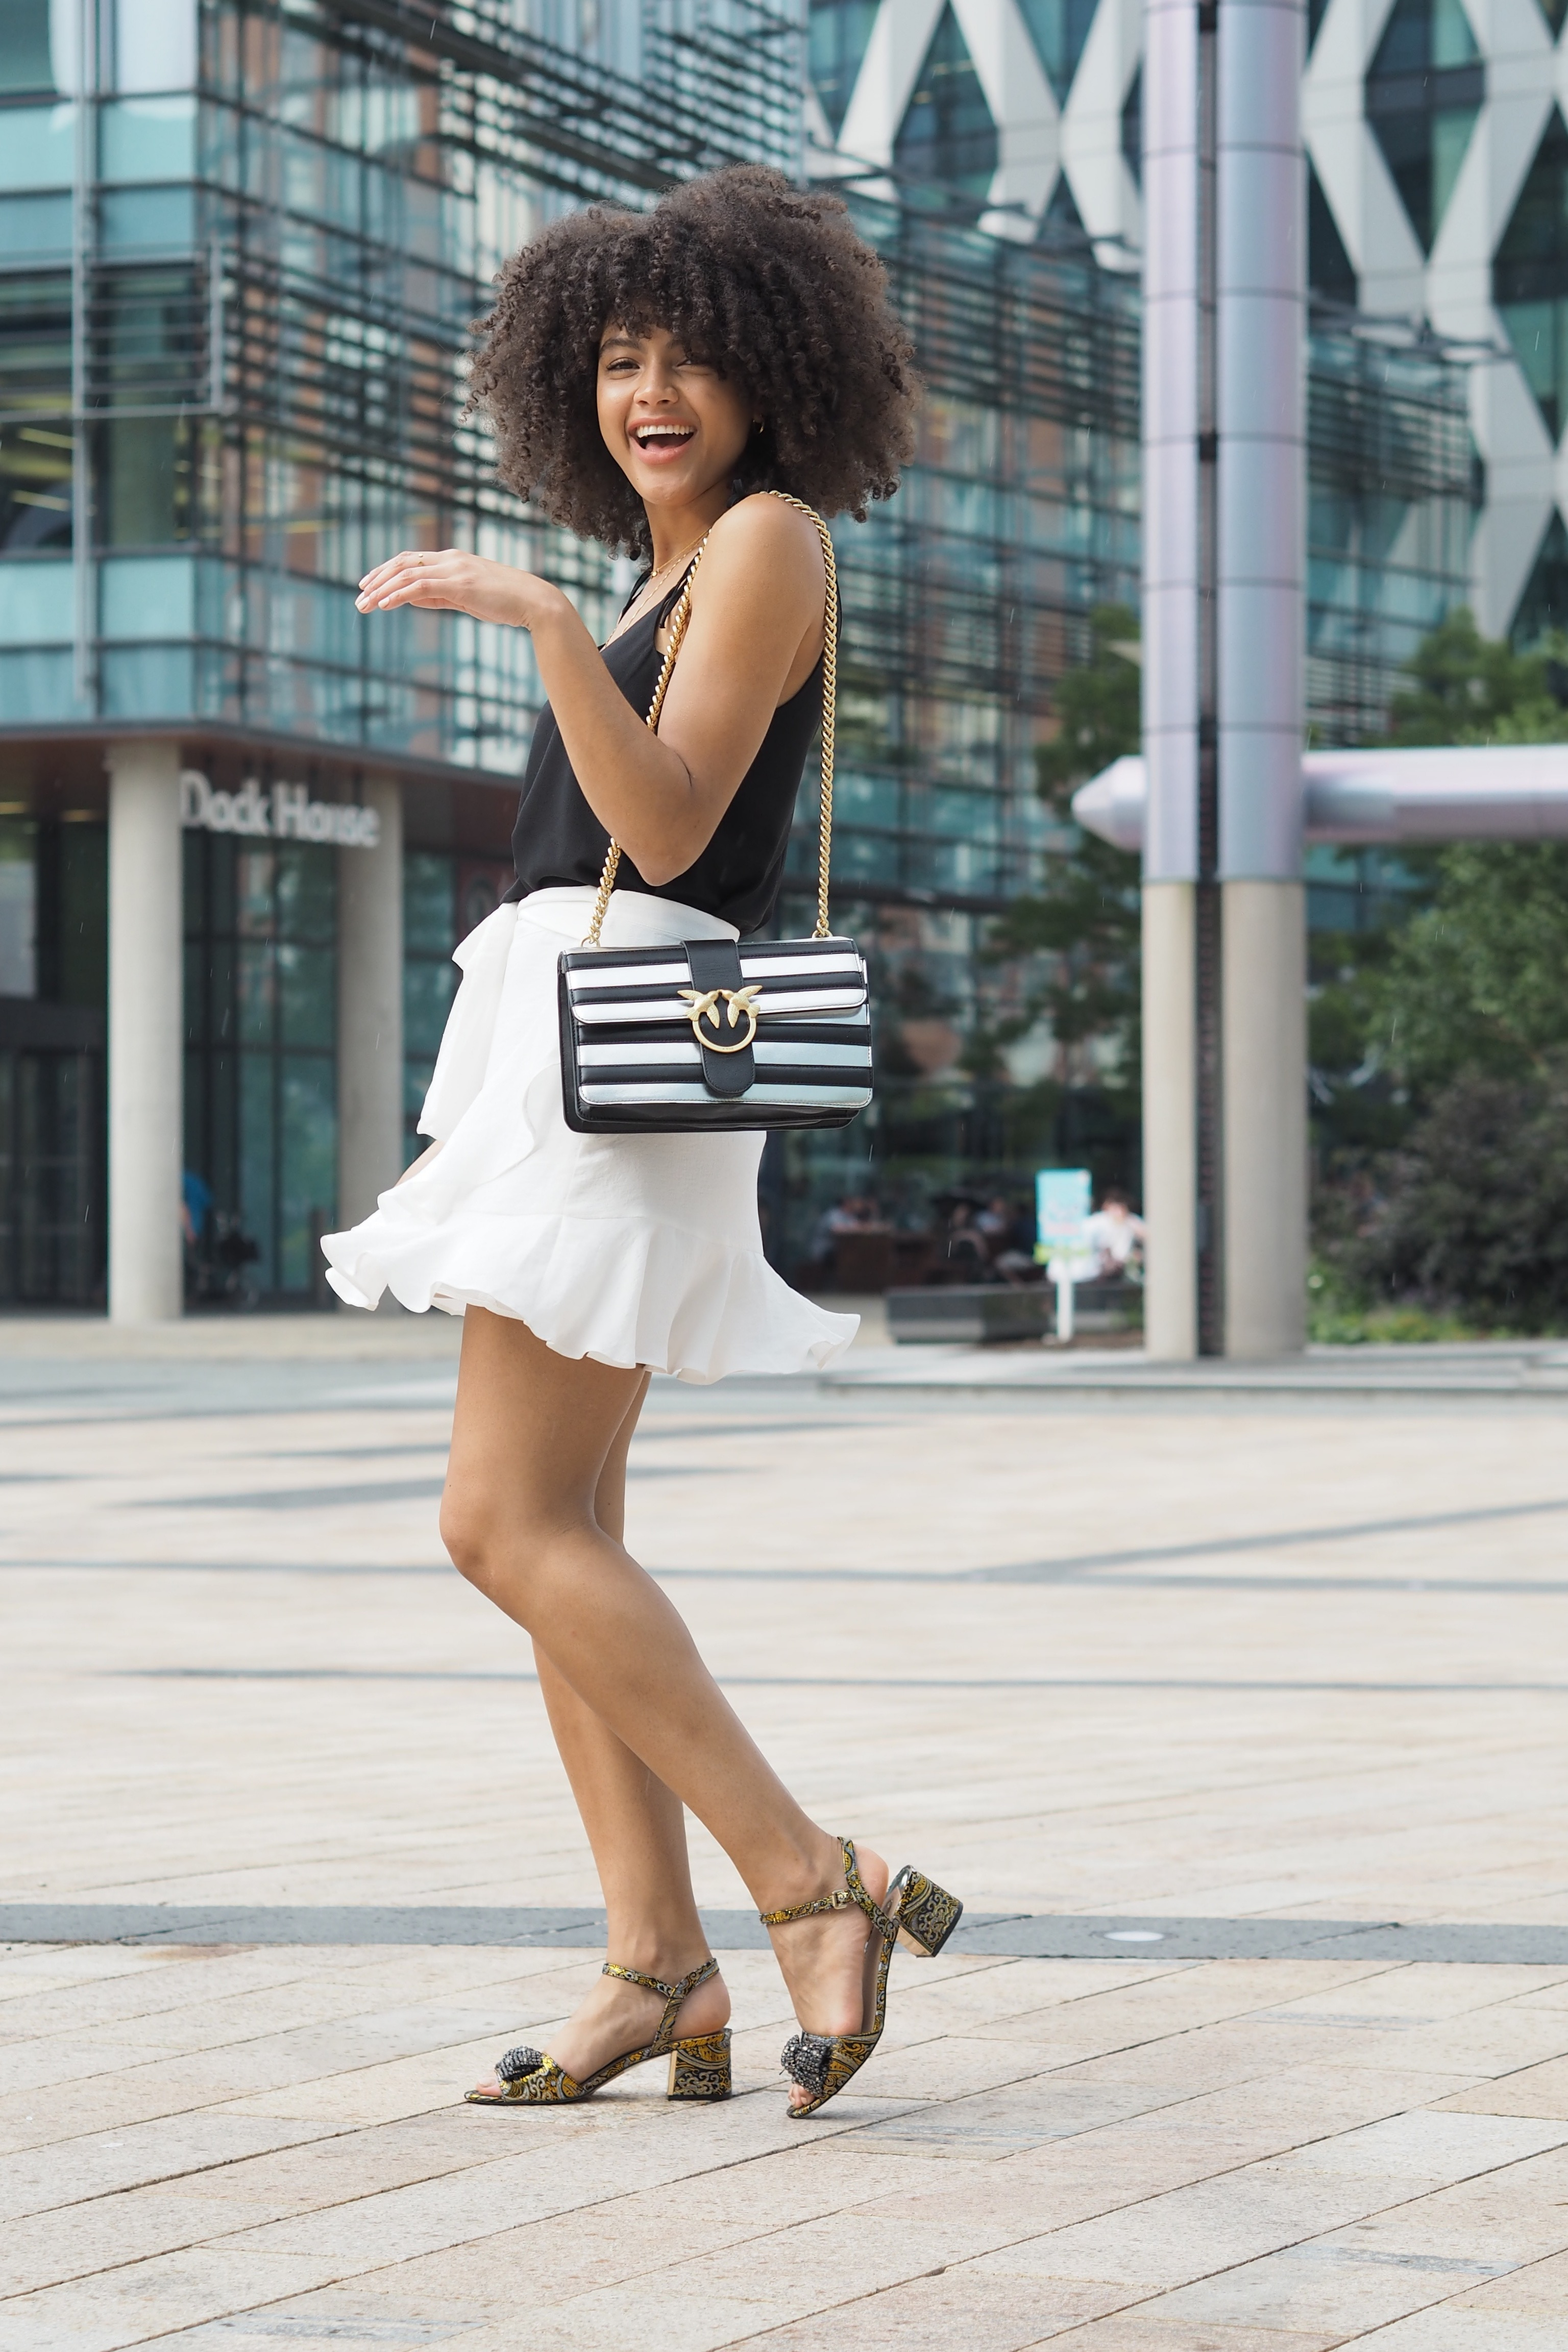 Topshop Ruffle Tie Mini Skirt Outfit